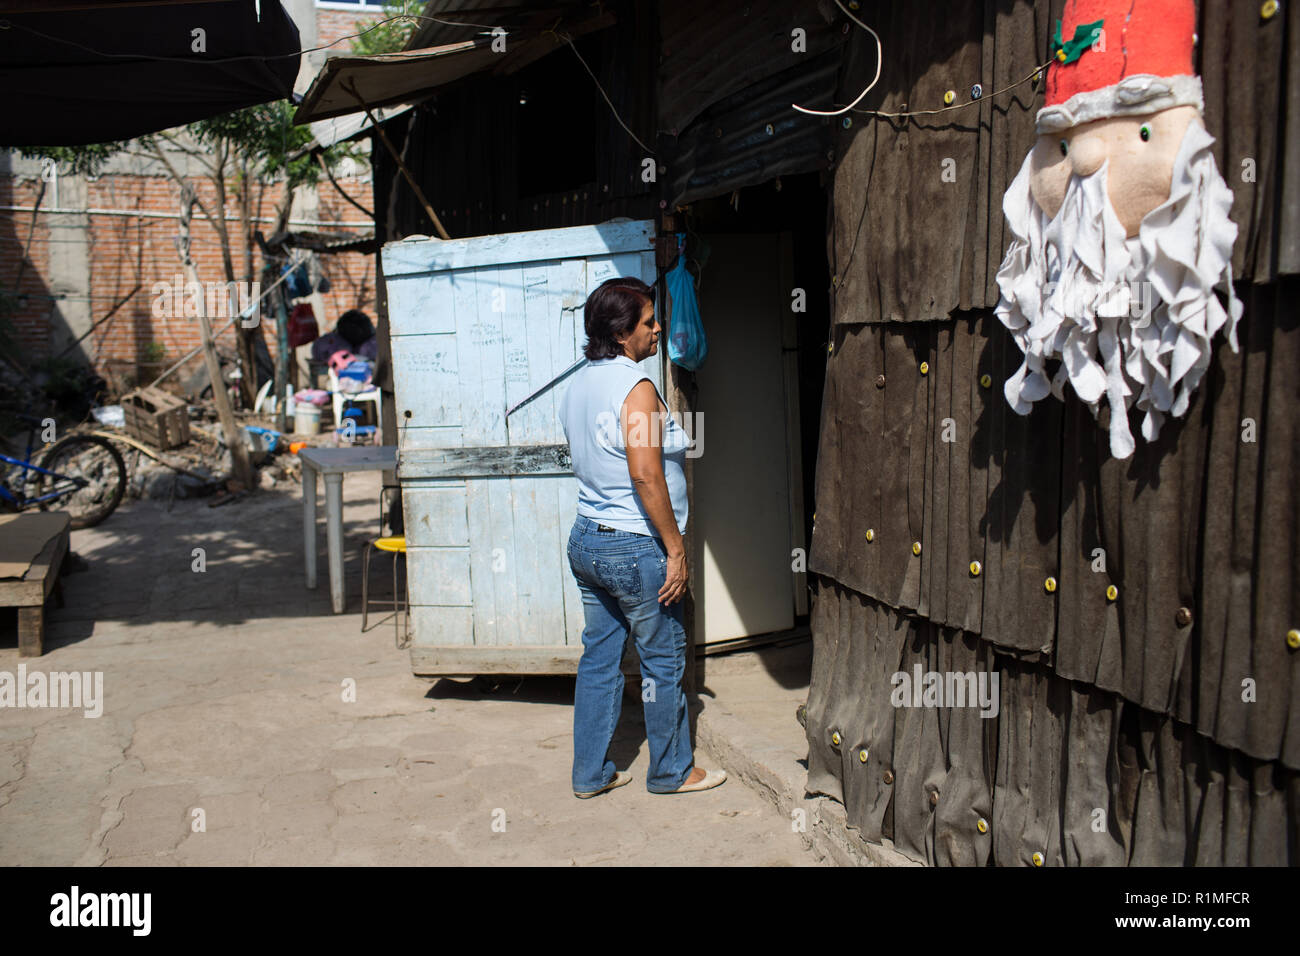 Bertha Moreno Garcia washes dishes outside of her house in Iguala, Guerrero, Mexico, February 6, 2016. Moreno Garcia's son Jose Manuel Cruz Moreno was last seen January 2, 2009 from a small community on the outskirts of Iguala. He was 22 years old.   Jose Manuel left the house, telling his mother he was going to buy new shoes and then go to a party celebrating the anniversary of a Colonia. His younger brother saw him drunk that night, that was the last time he was seen.   ÒIt is very heavy for me,Ó said Bertha. ÒWe went to search, we went to the hospital, we went to the jail, the Colonia he we Stock Photo